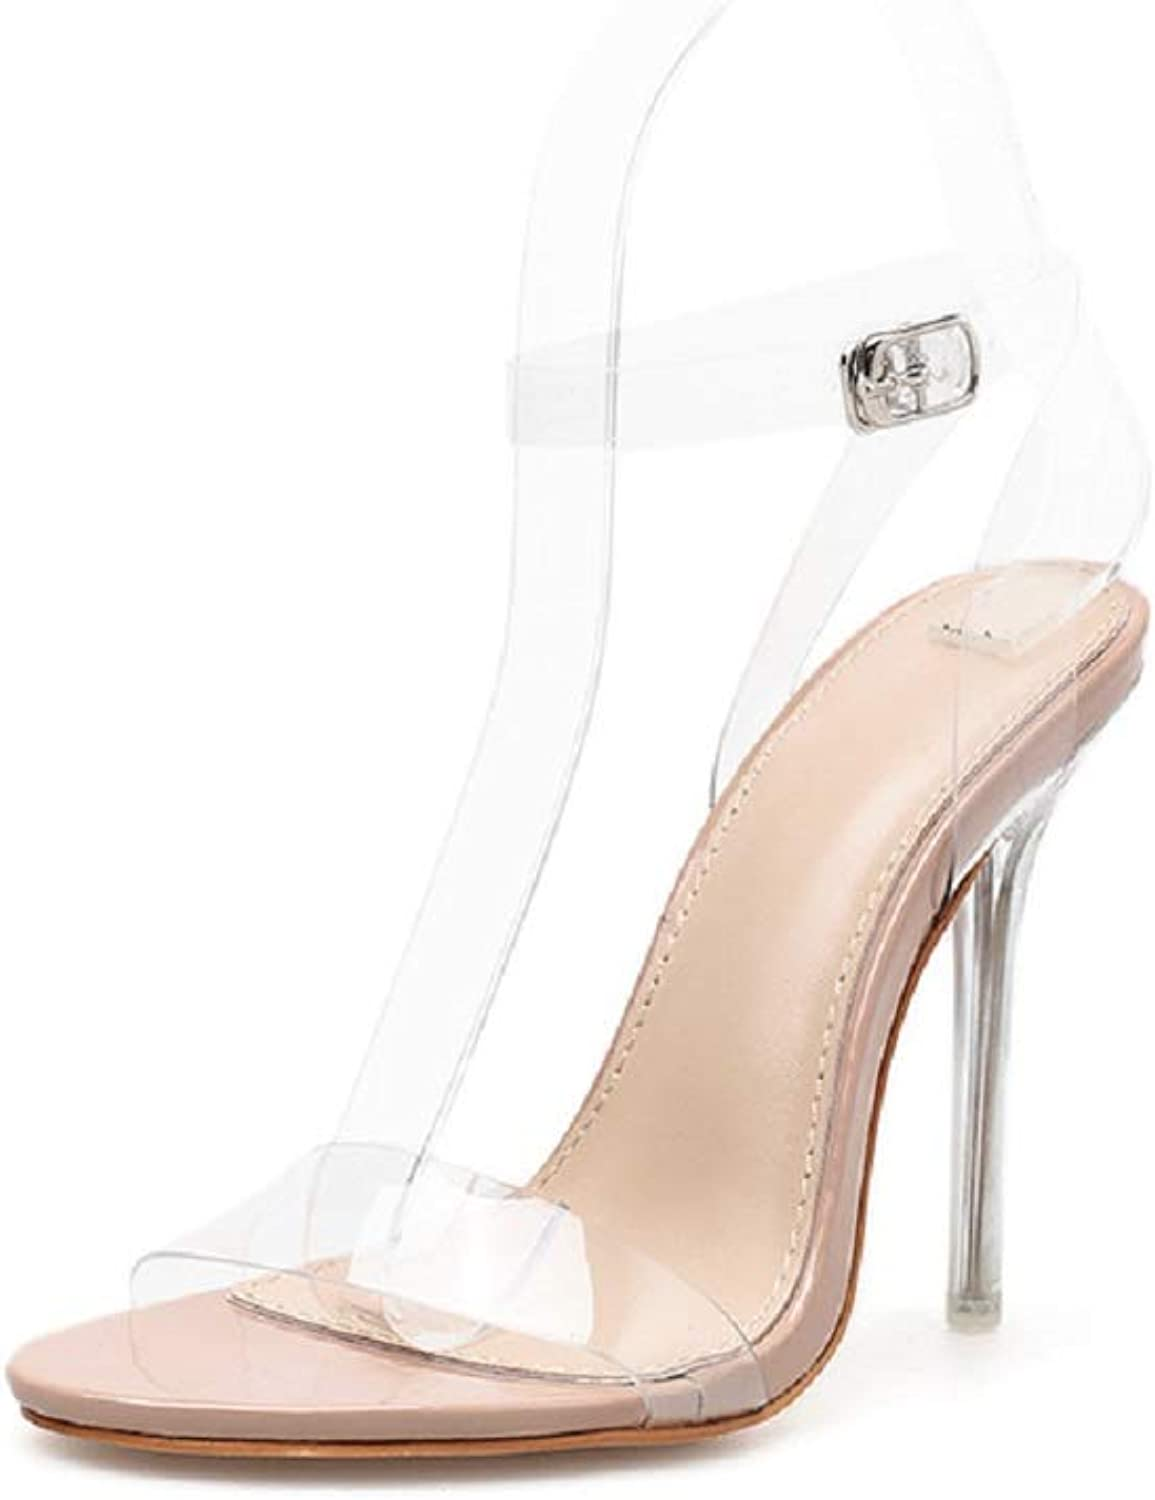 Women's Sandals - Scotch Glue with Stiletto High Heel Sexy shoes